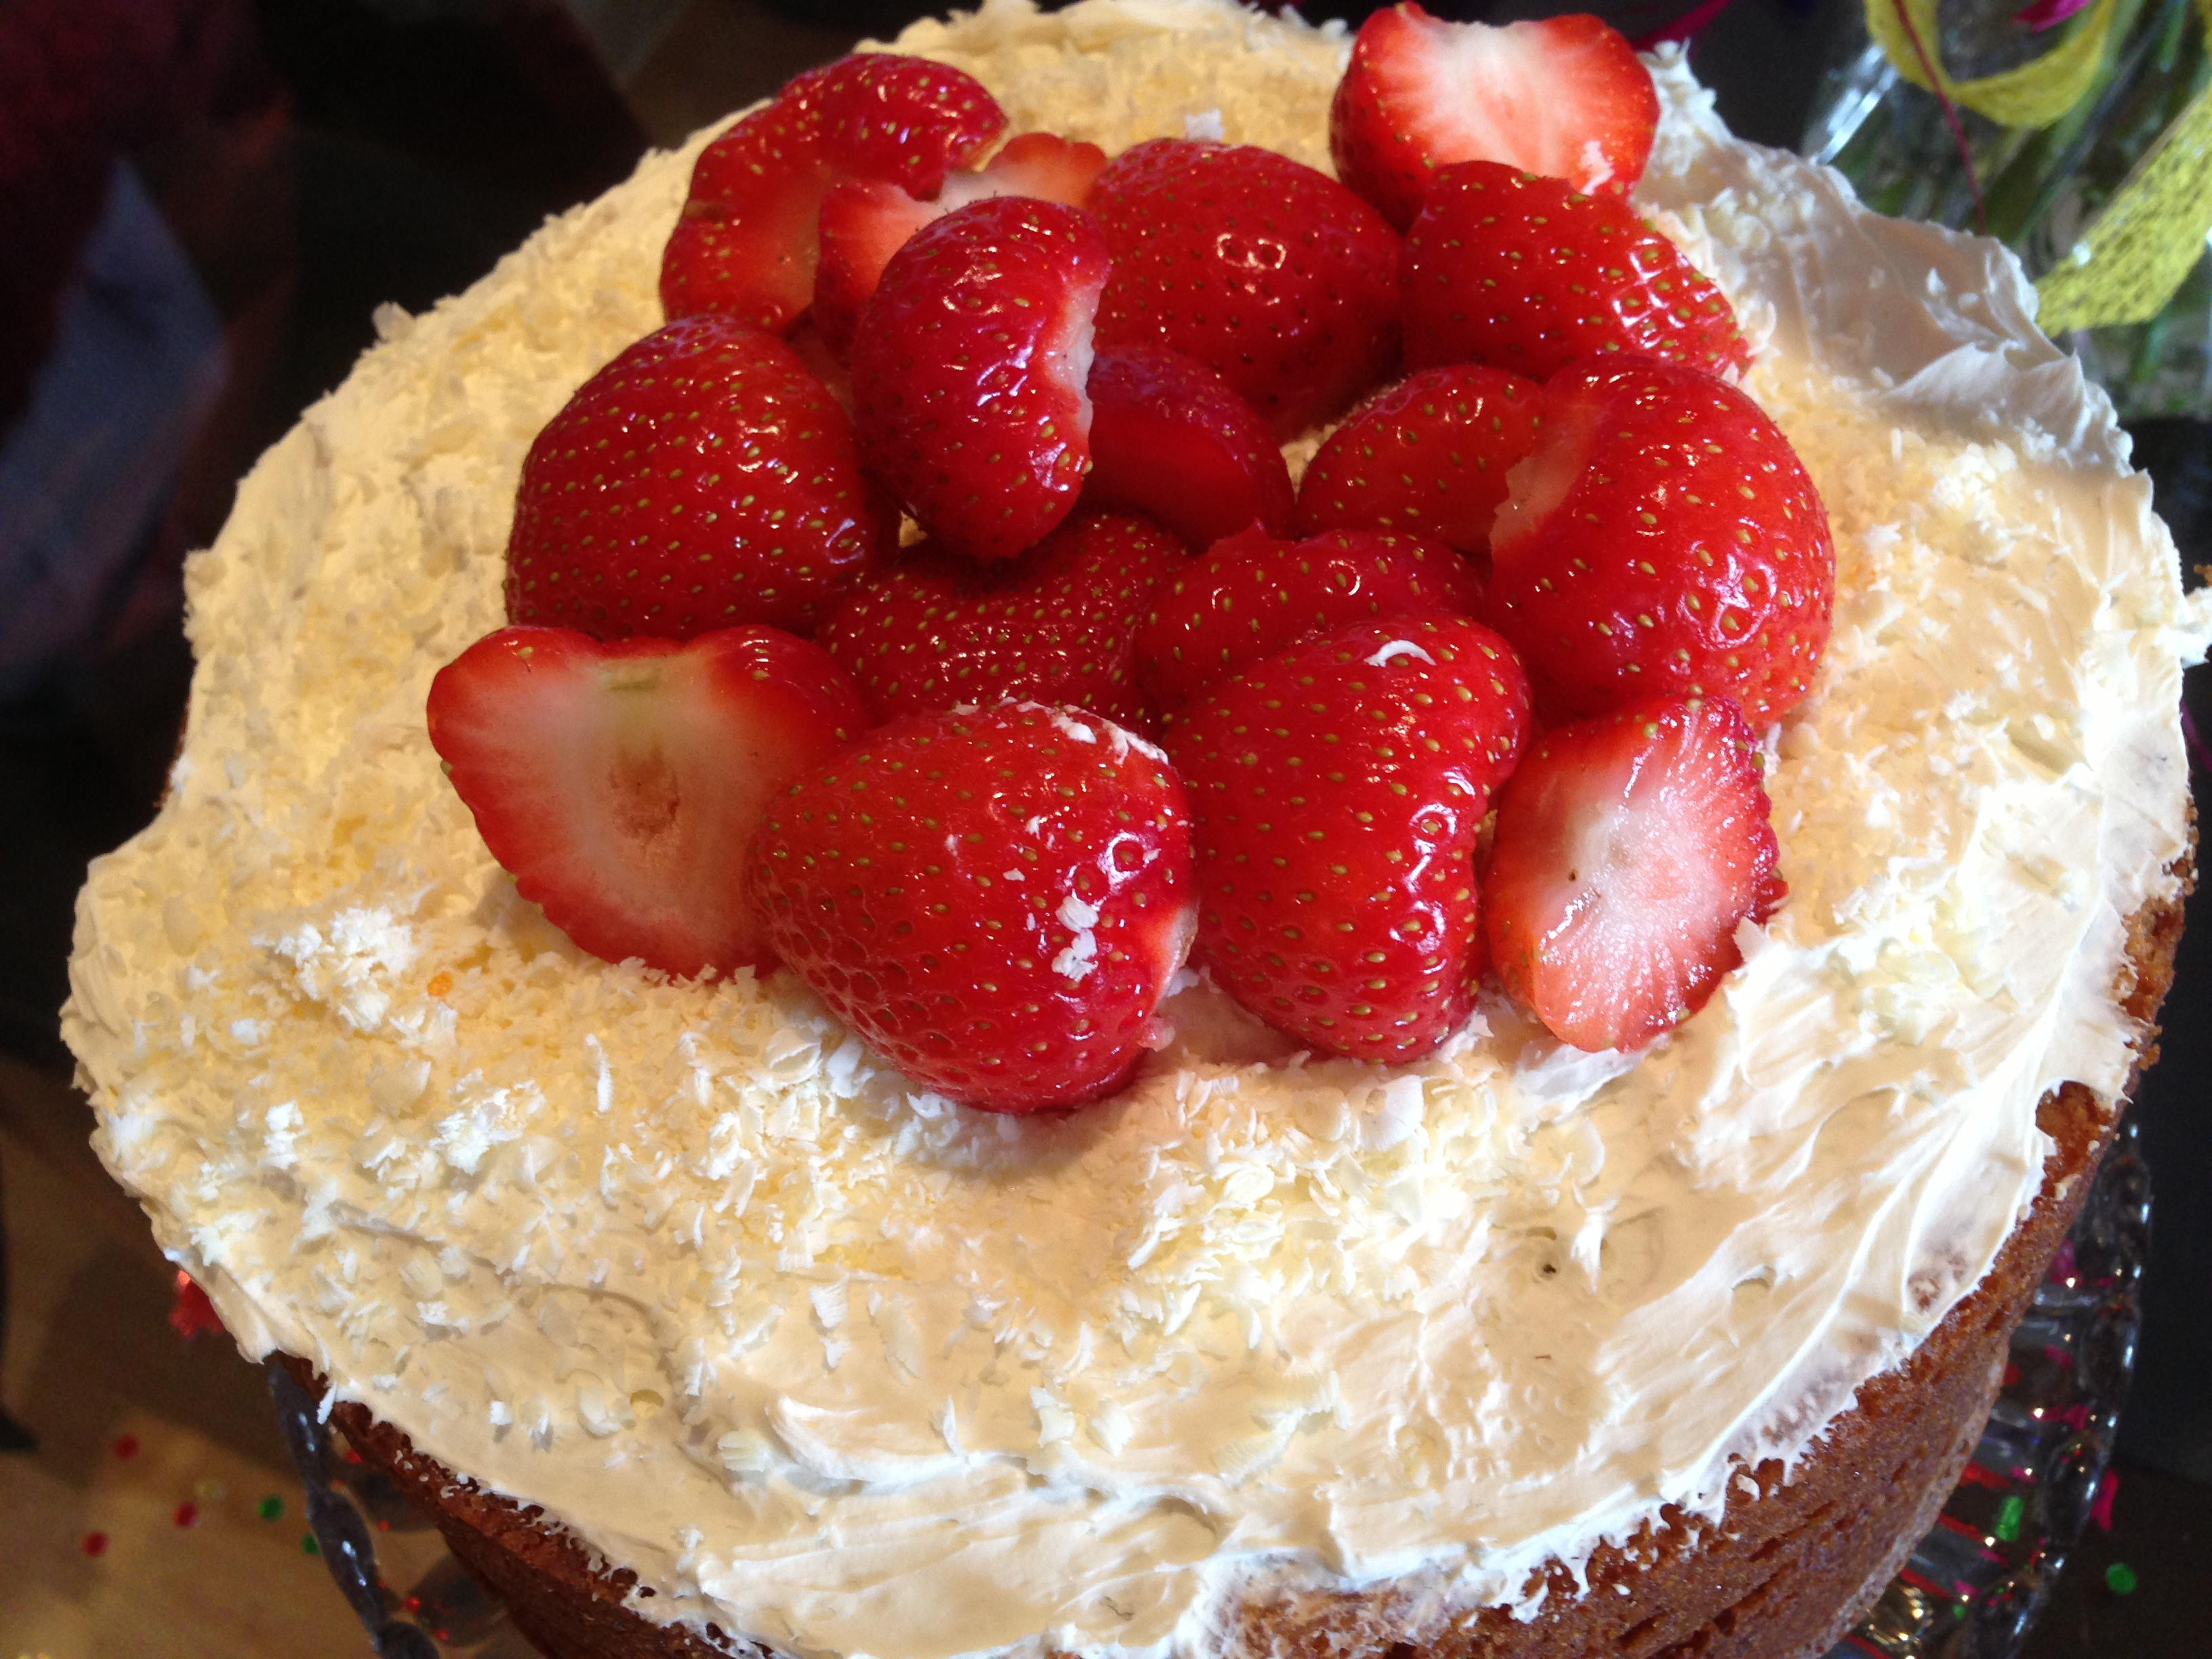 Strawberry and white chocolate cake